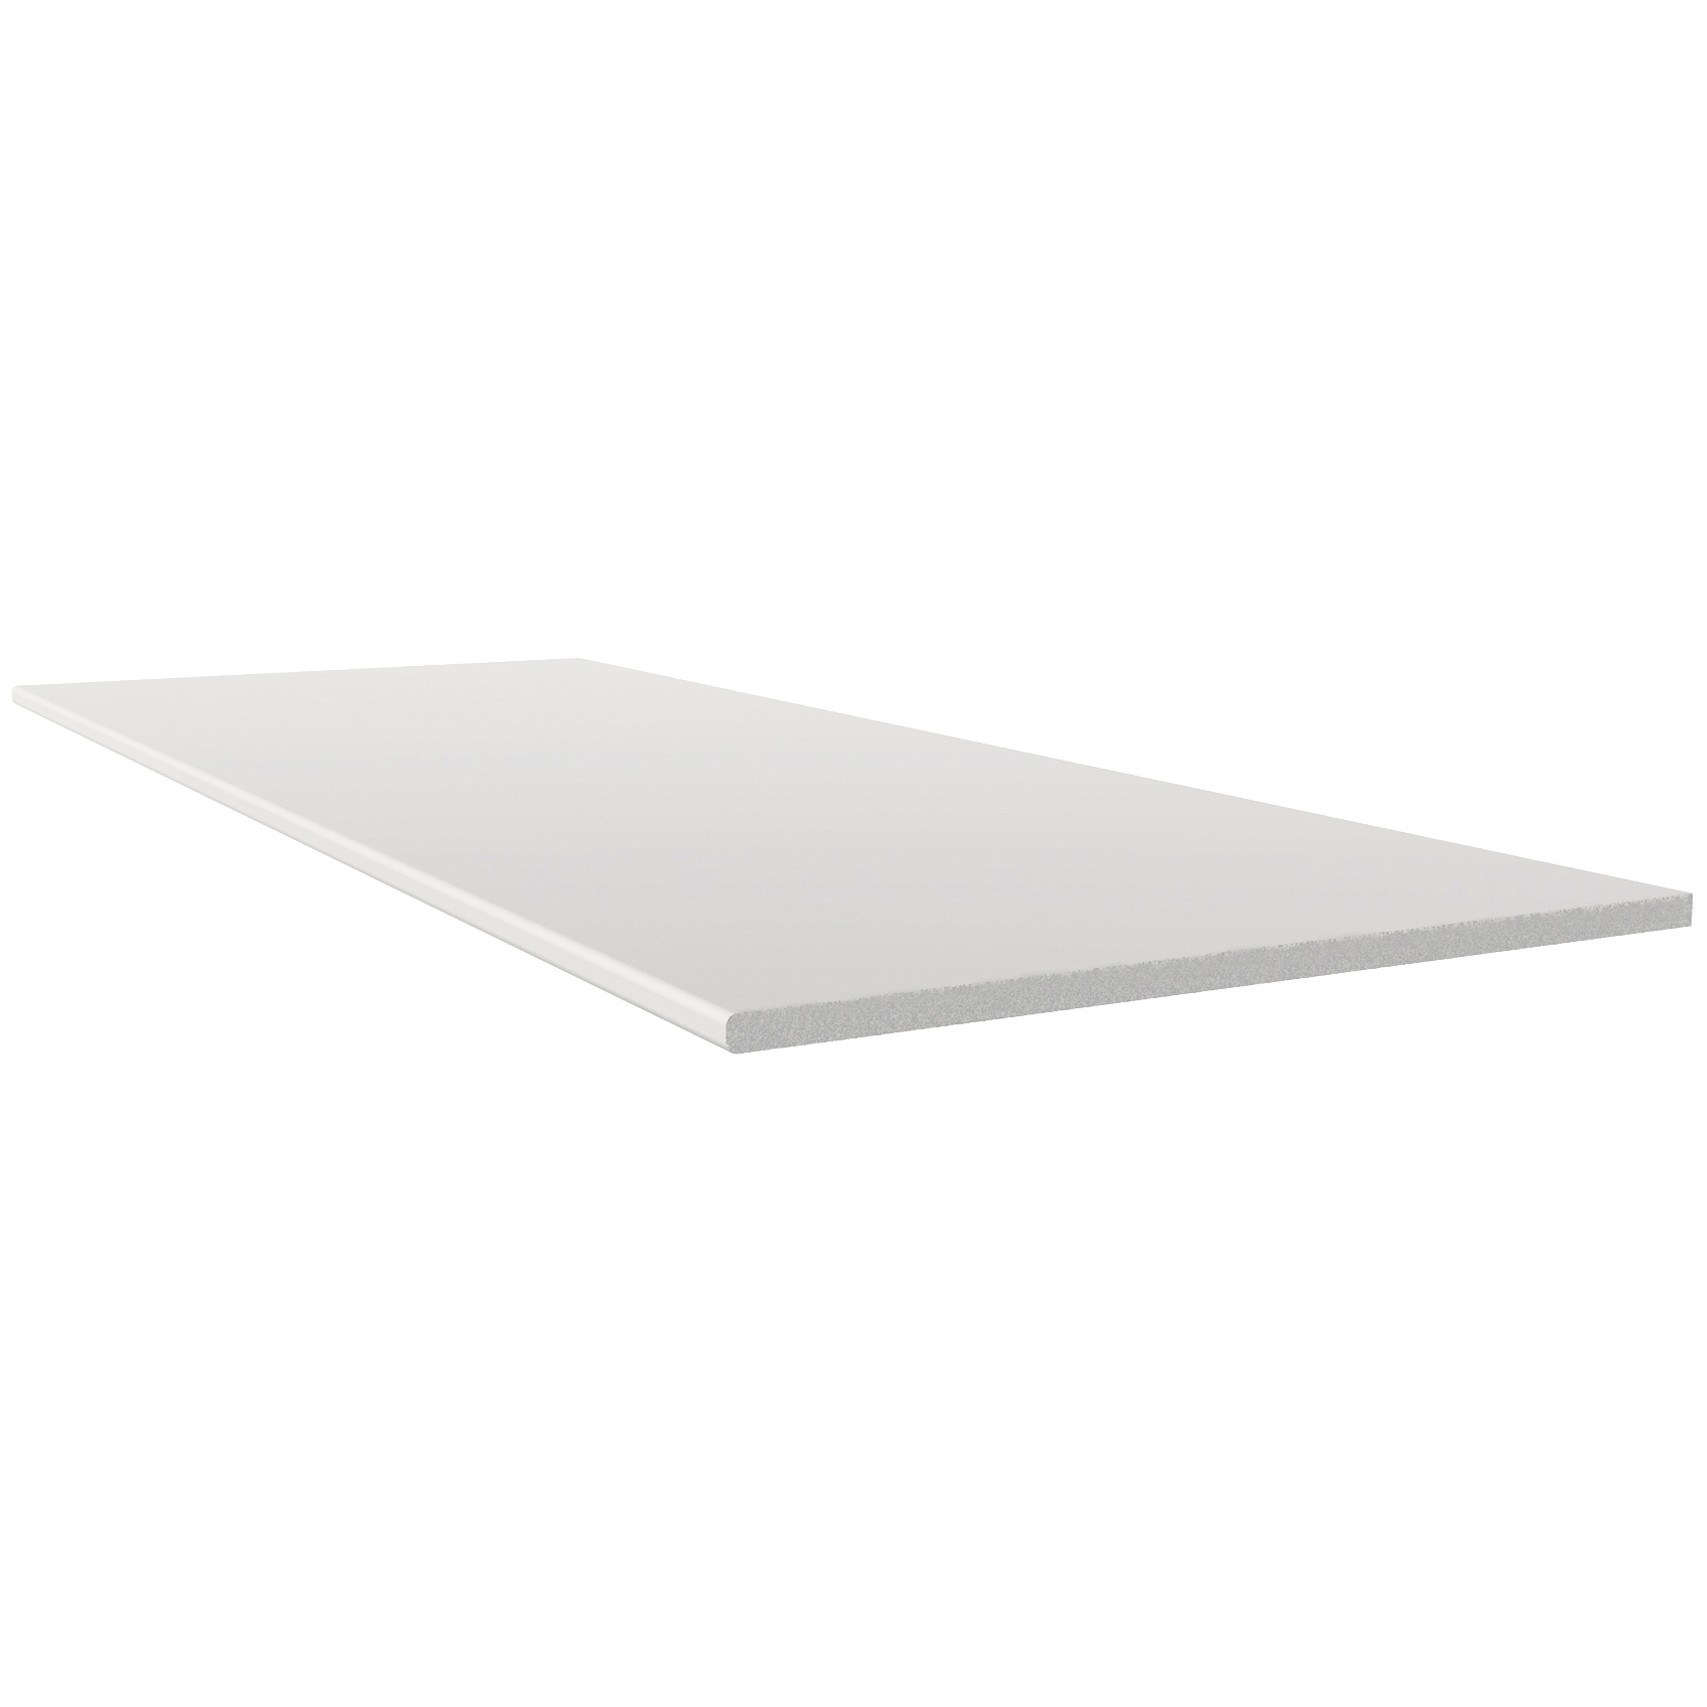 Freefoam 10mm Solid Soffit Board - White, 300mm, 2.5 metre